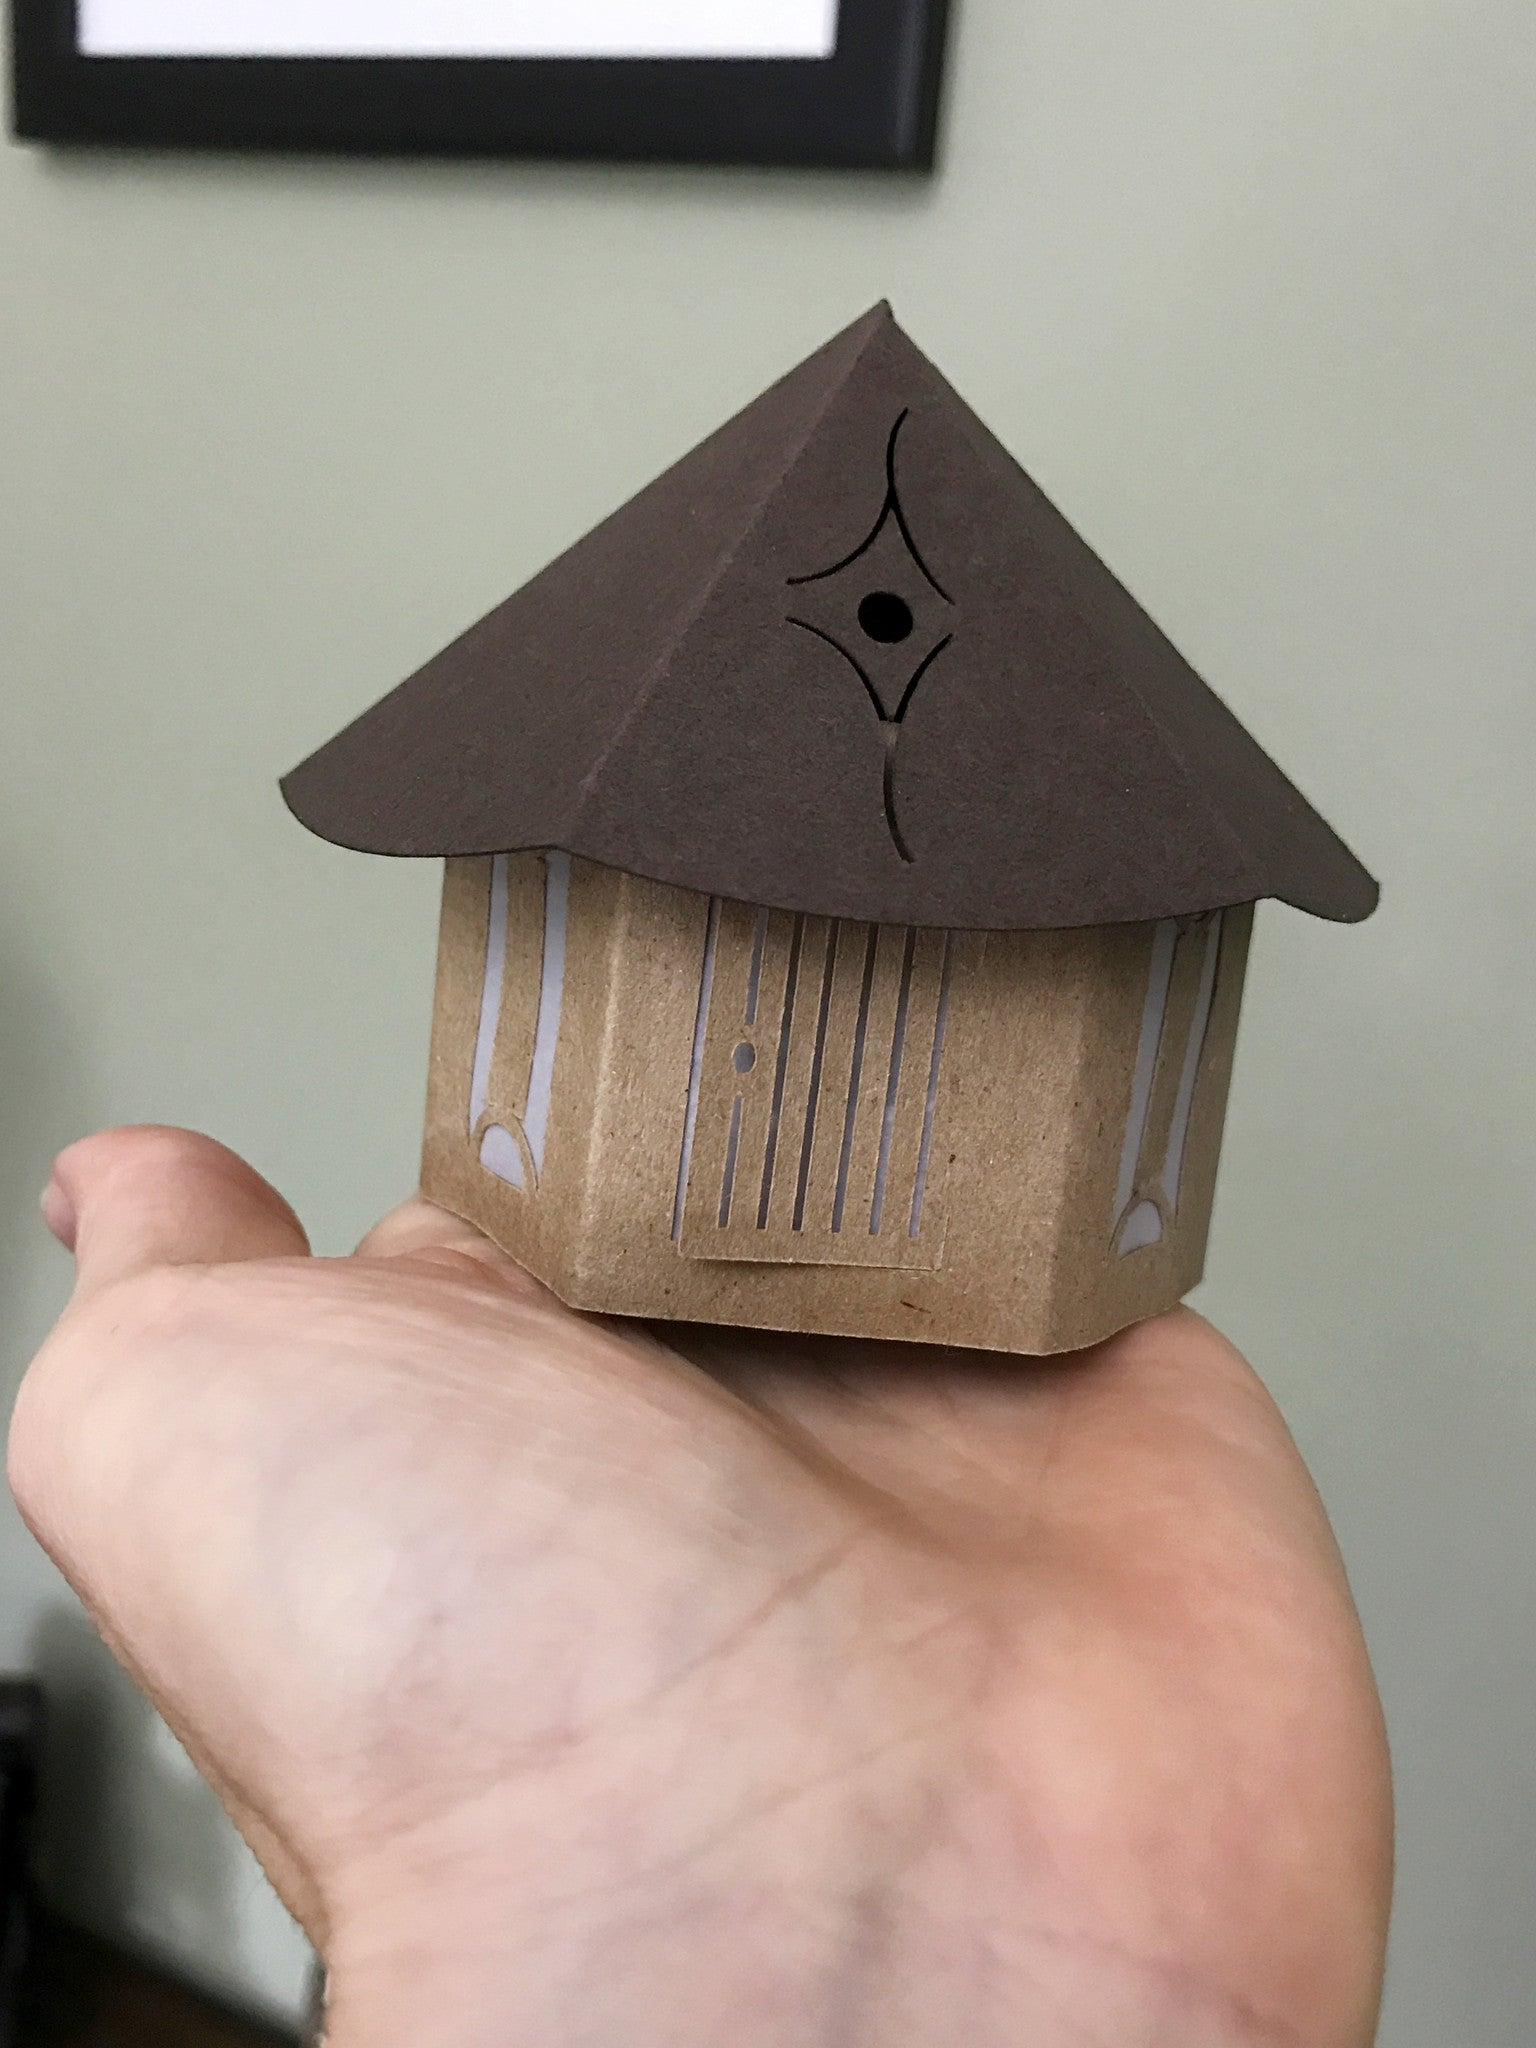 Tiny House Luminary in hand to show size dark brown with light brown roof